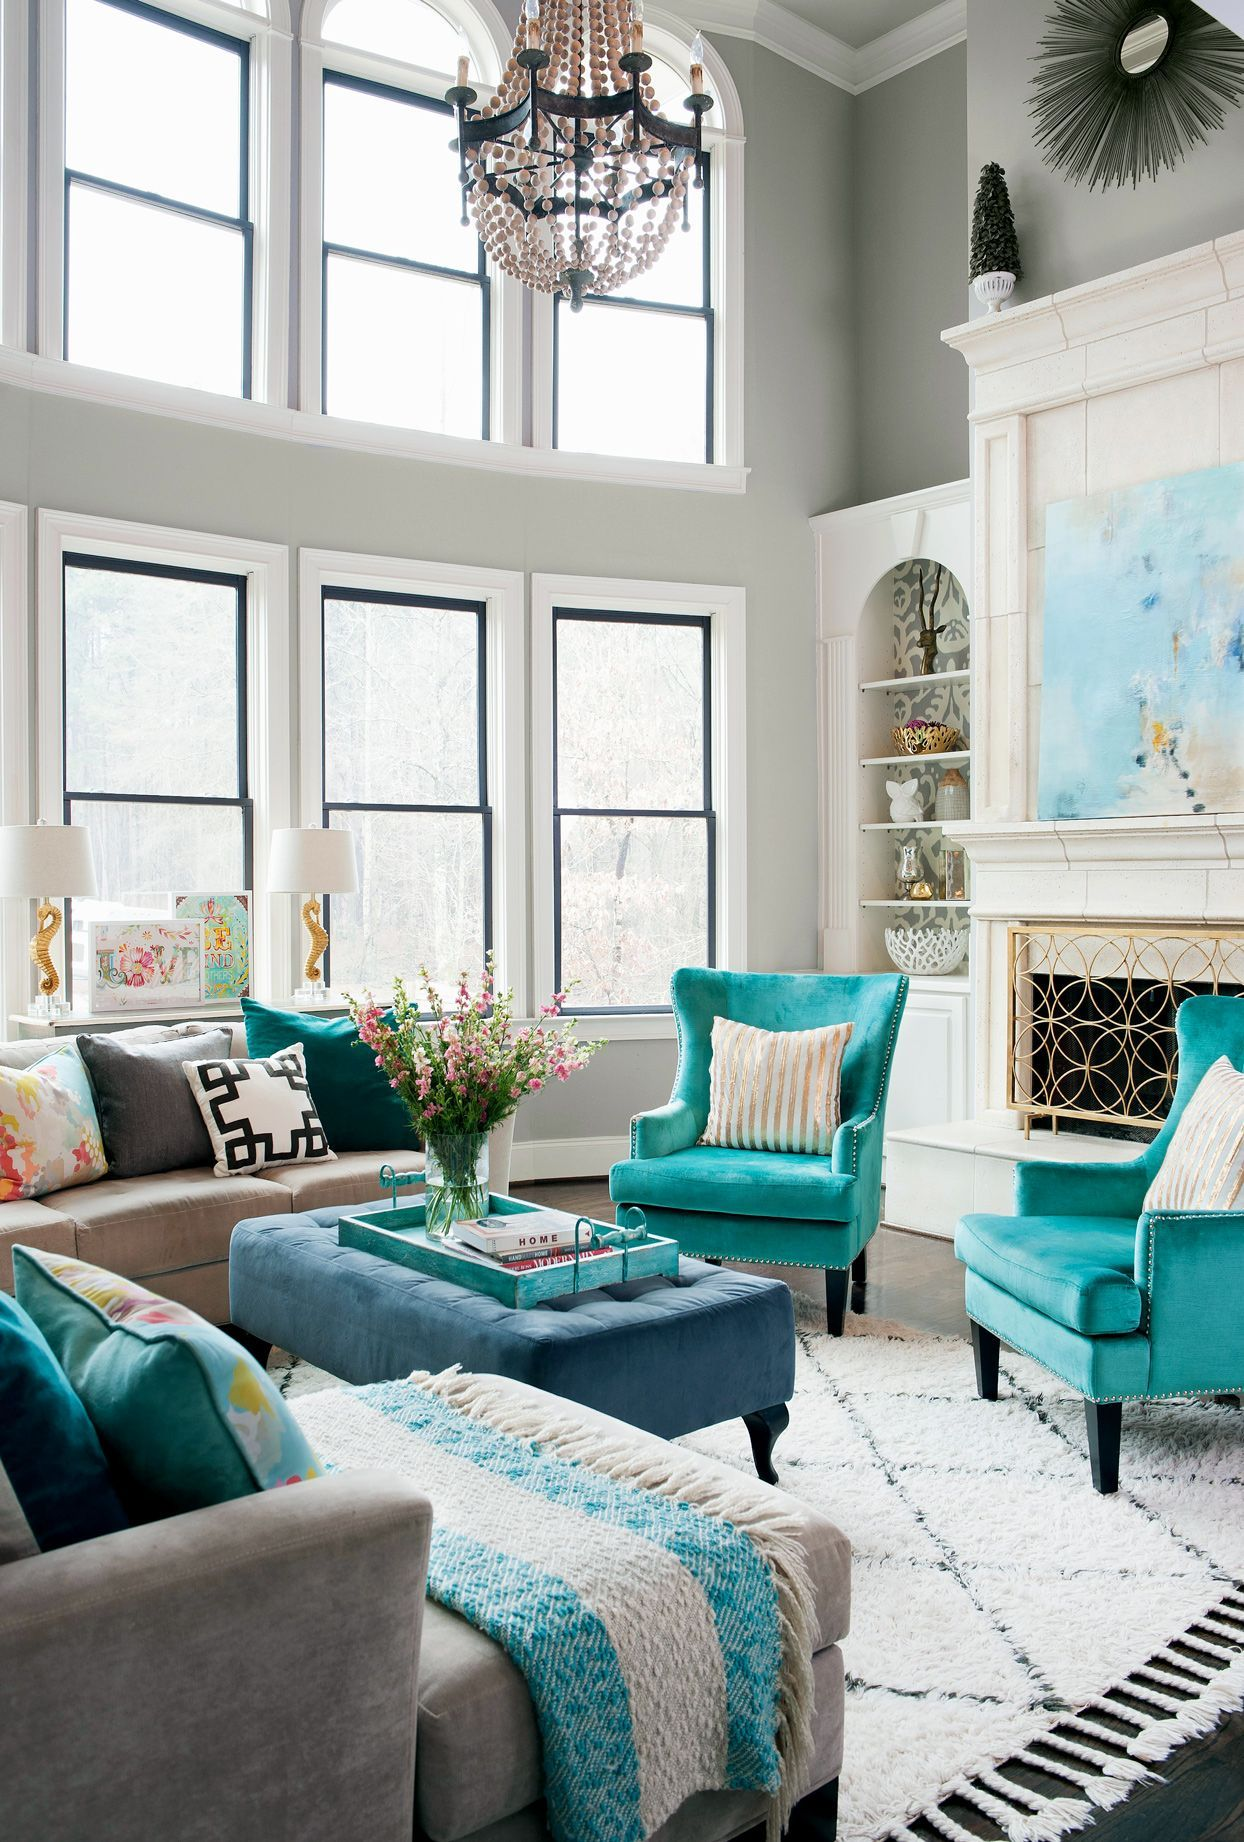 20 Living Room Furniture Arrangement Ideas For Any Size Space In 2021 Living Room Color Schemes Rugs In Living Room Living Room Color